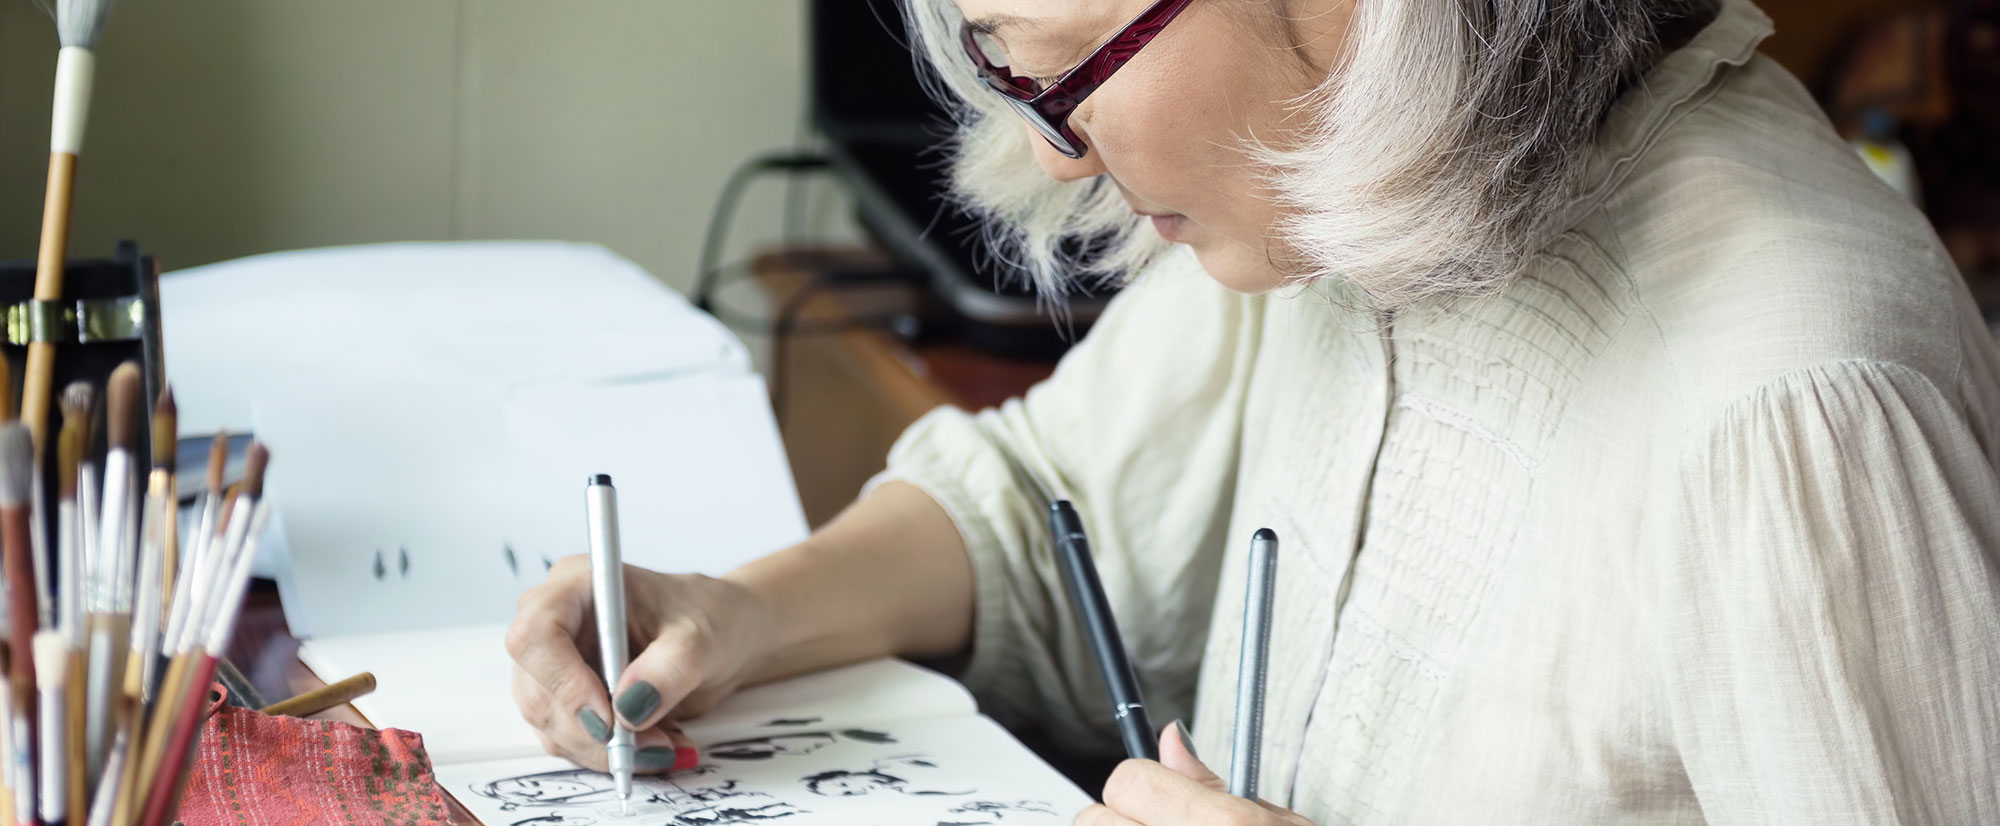 Female resident using fine tipped pen to create artwork at desk